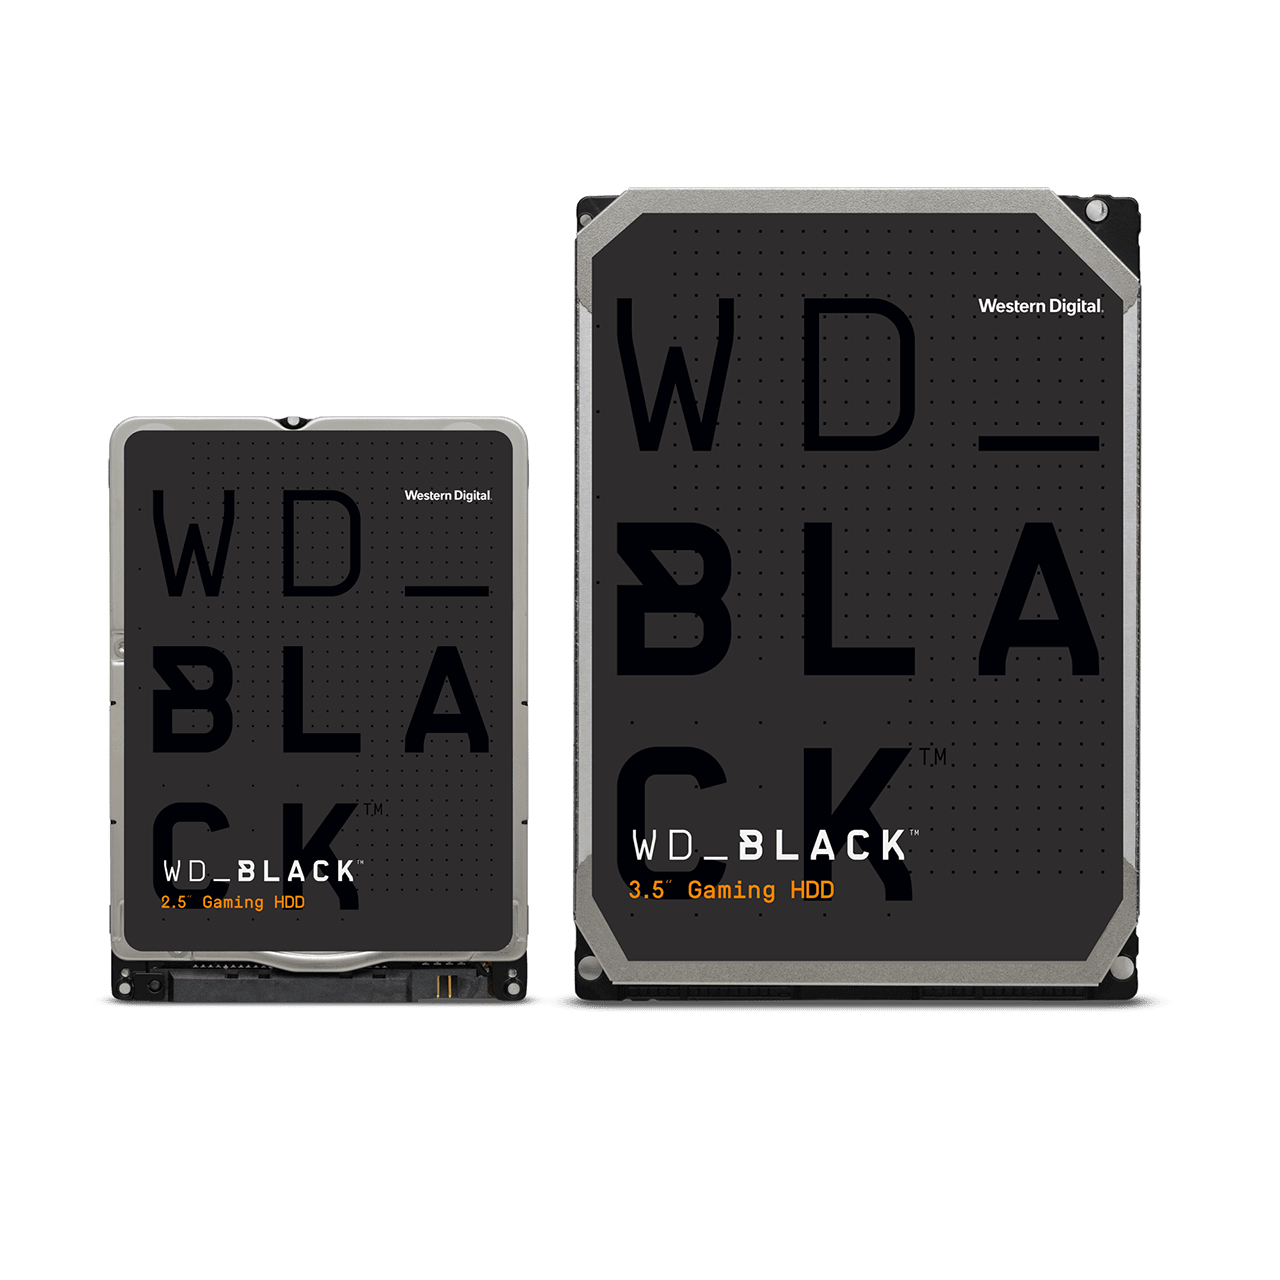 product-hero-image-wd-black-hdd-western-digital-main